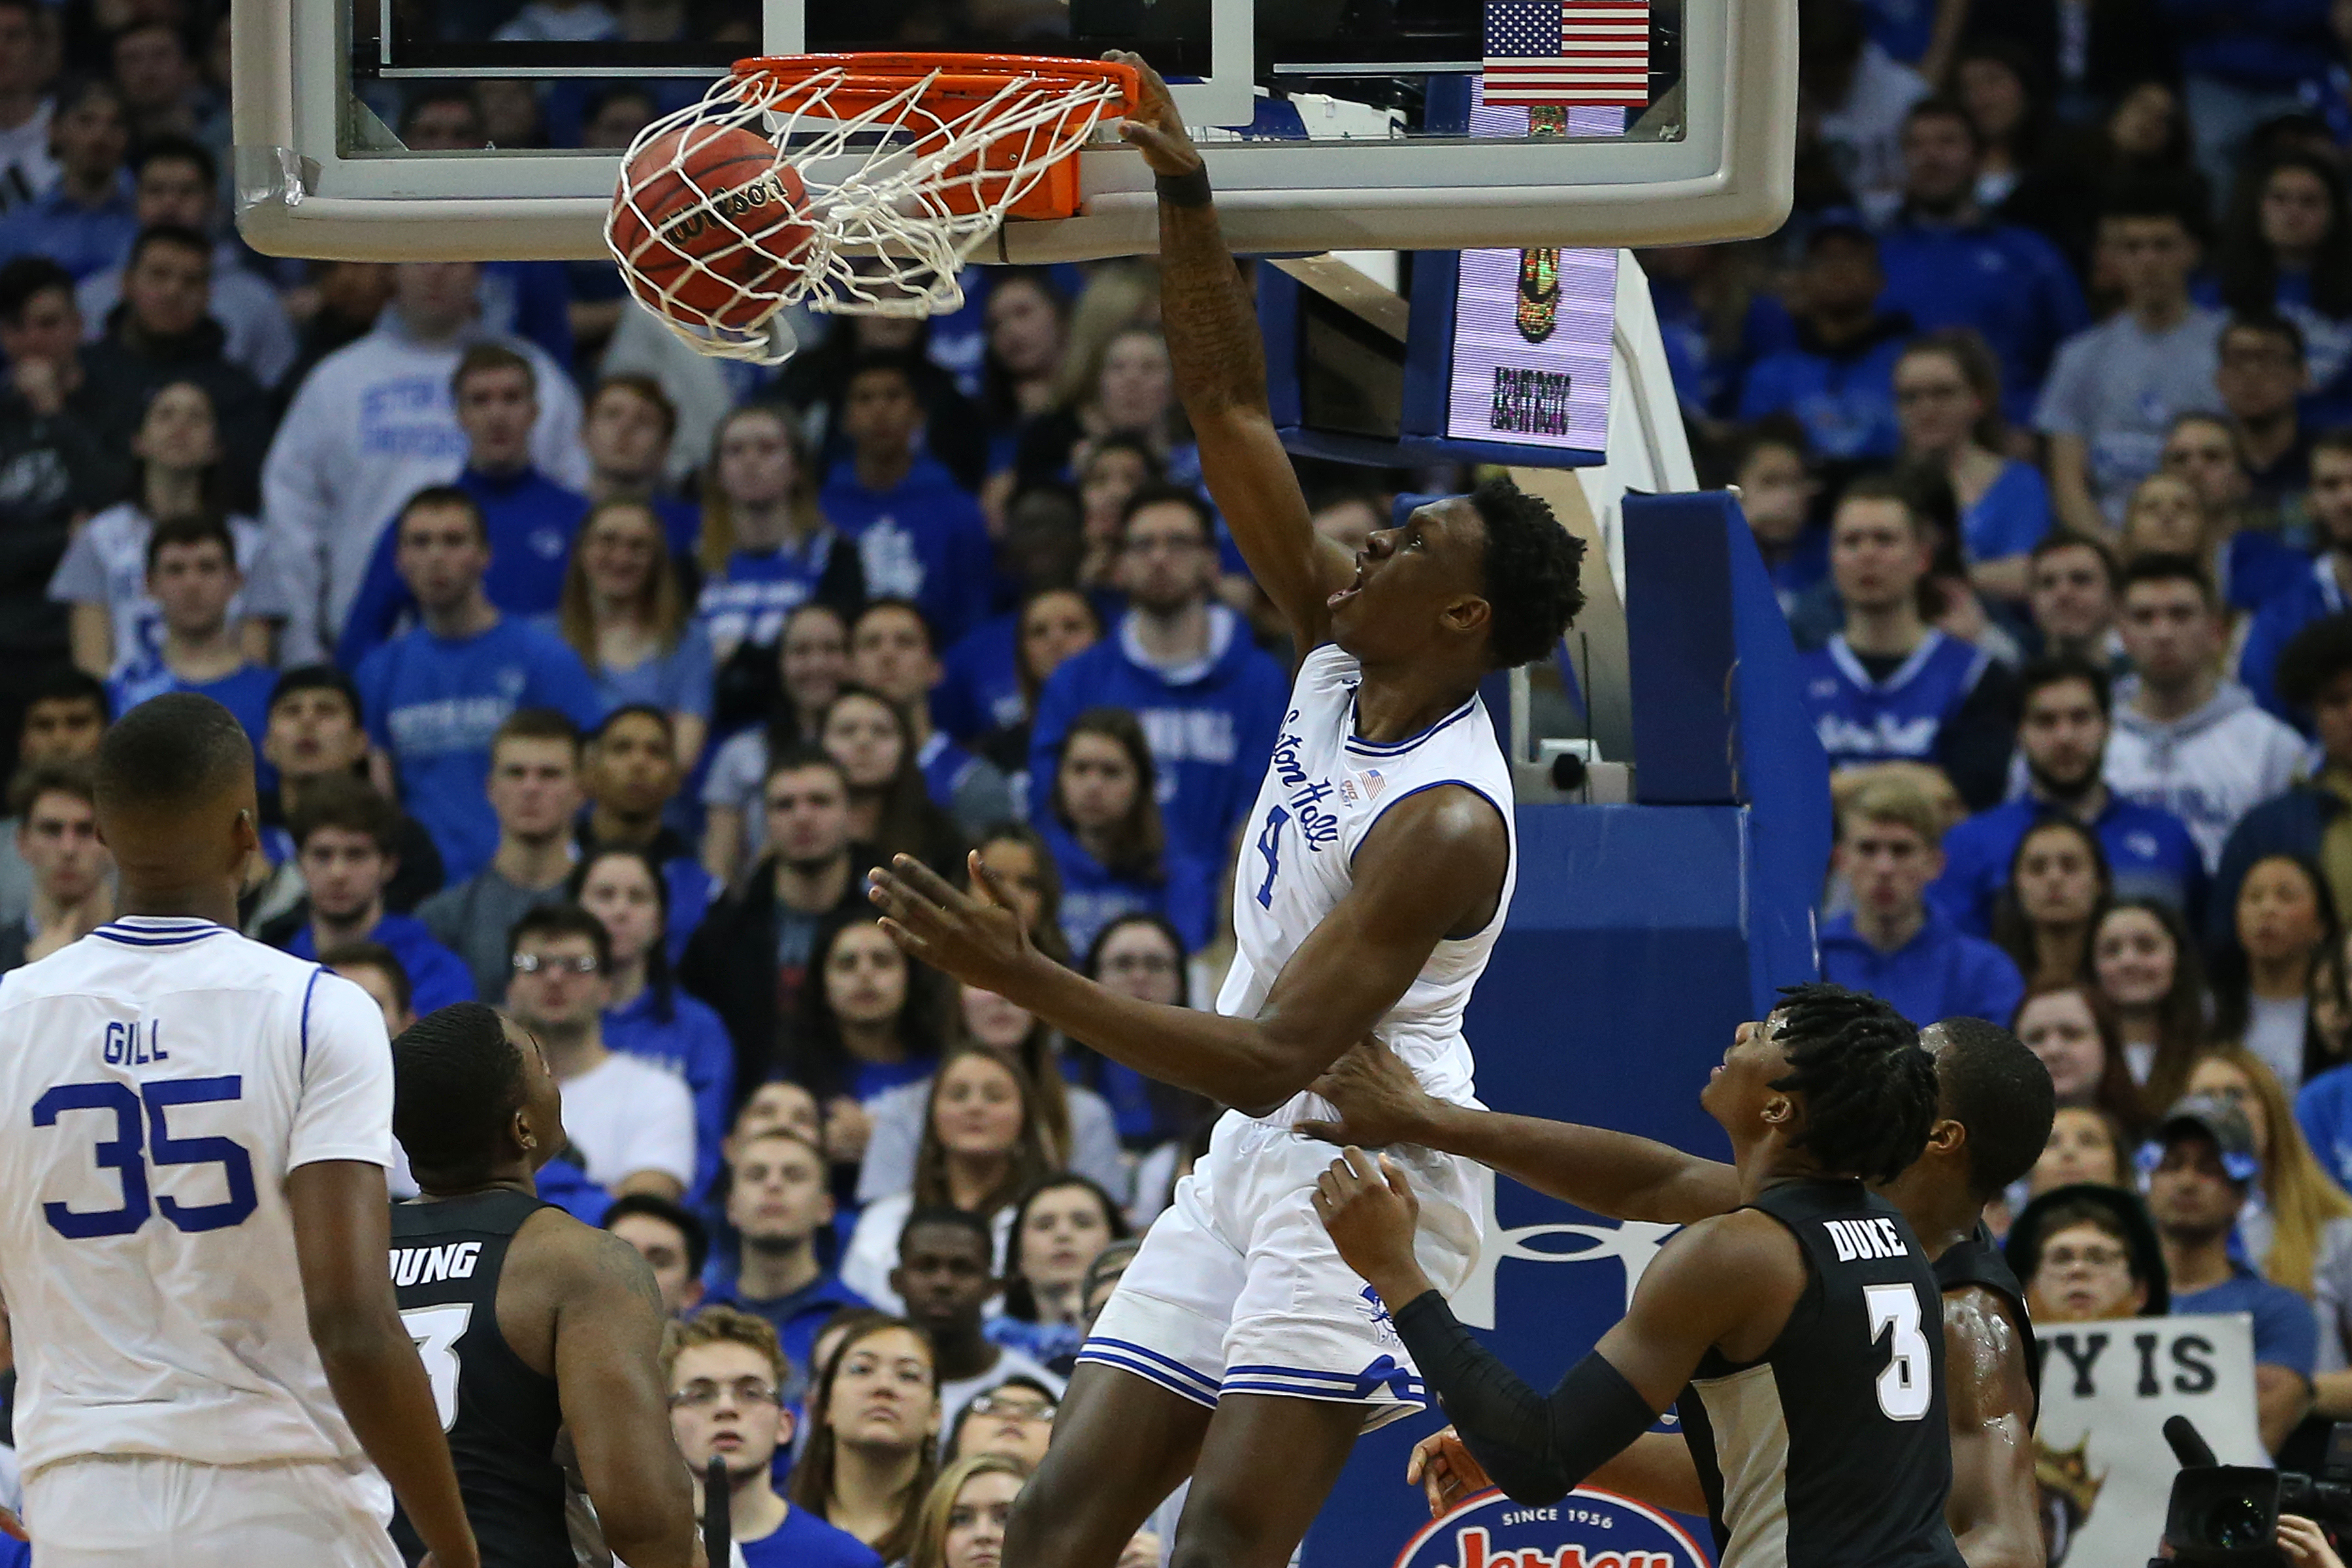 NEWARK, NJ - JANUARY 22: Tyrese Samuel #4 of the Seton Hall Pirates dunks over David Duke #3 and Greg Gantt #1 of the Providence Friars during the first half of a college basketball game at Prudential Center on January 22, 2020 in Newark, New Jersey.